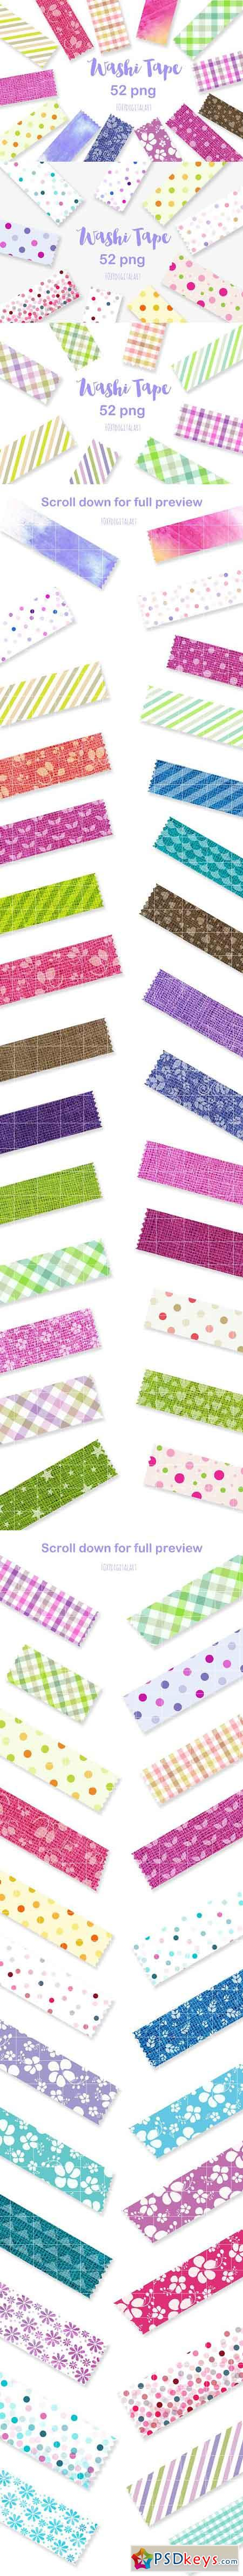 washi tape strips 792510